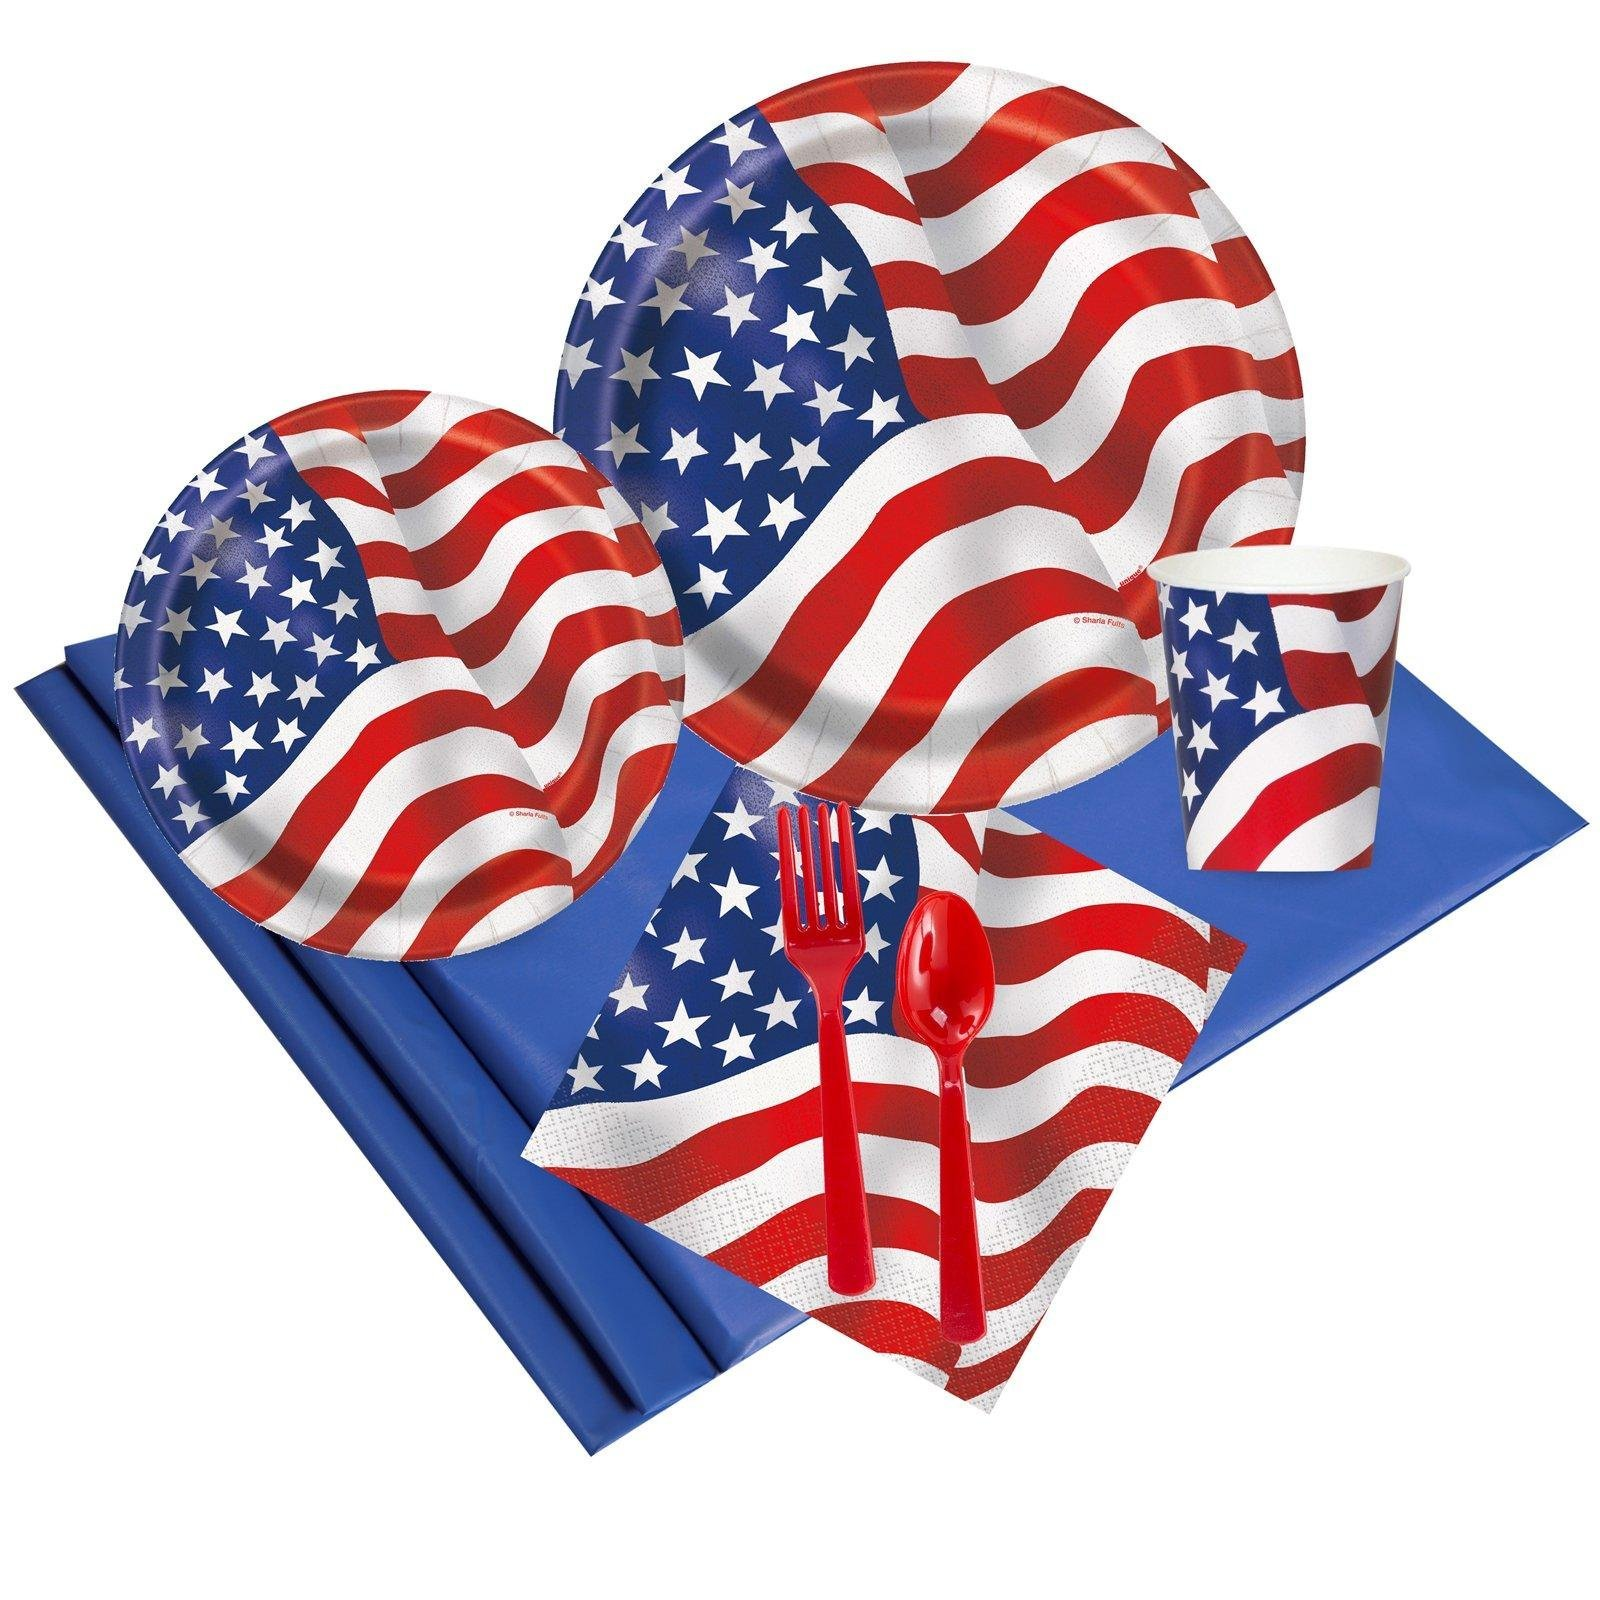 Patriotic USA Flag Party Supplies - Party Pack for 24 Guests